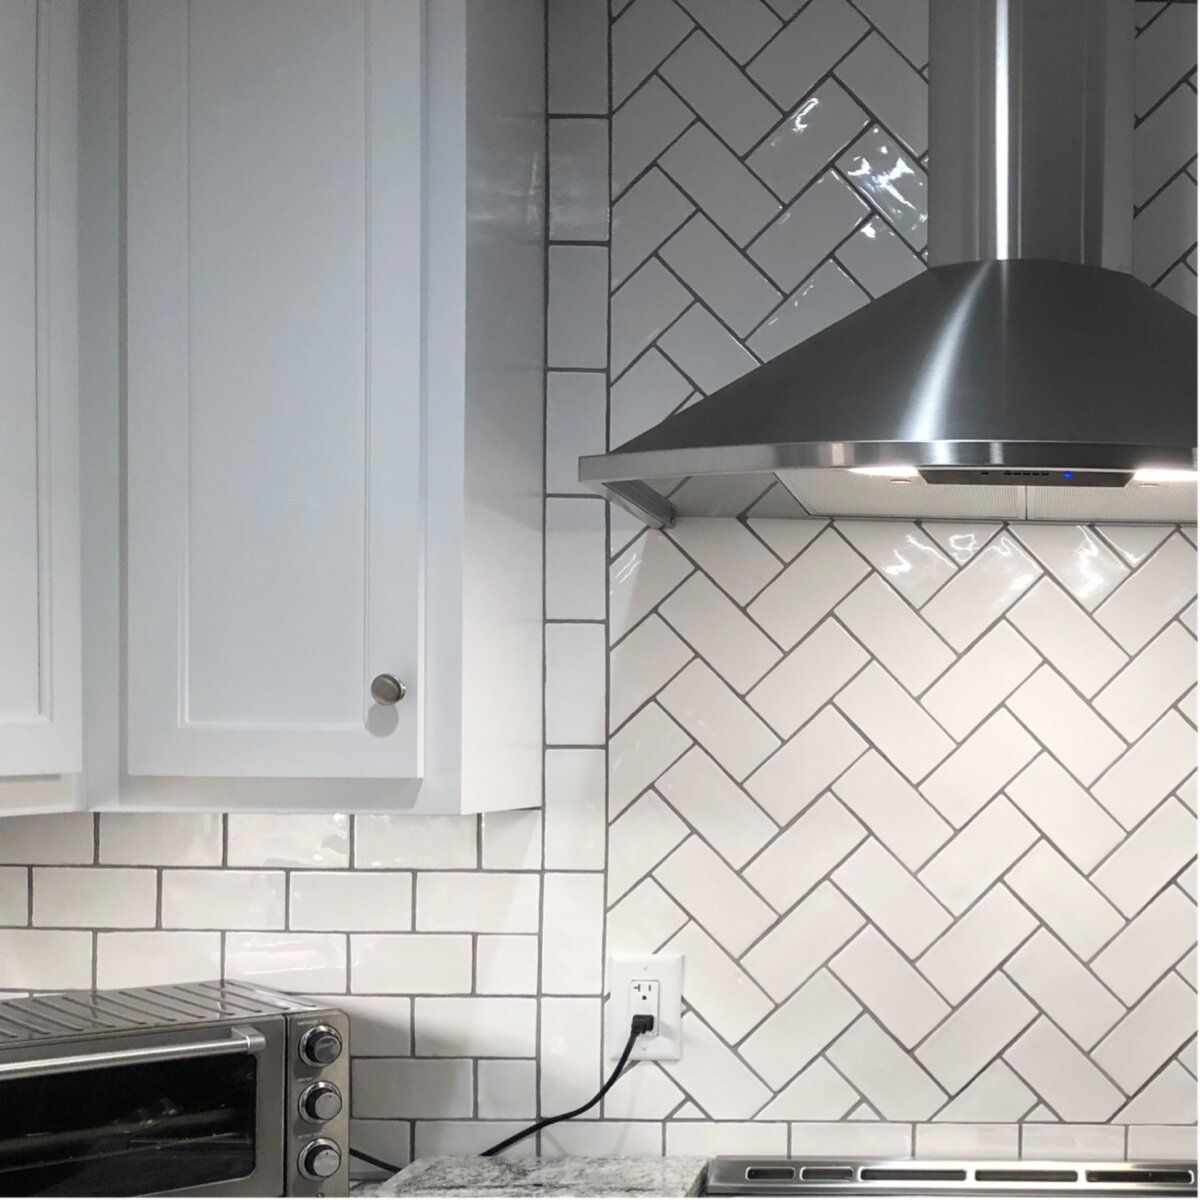 Artigiano Daltile 3 X 6 Ceramic Subway Tile In 2020 White Subway Tiles Kitchen Backsplash Kitchen Backsplash Trends Subway Tile Backsplash Kitchen